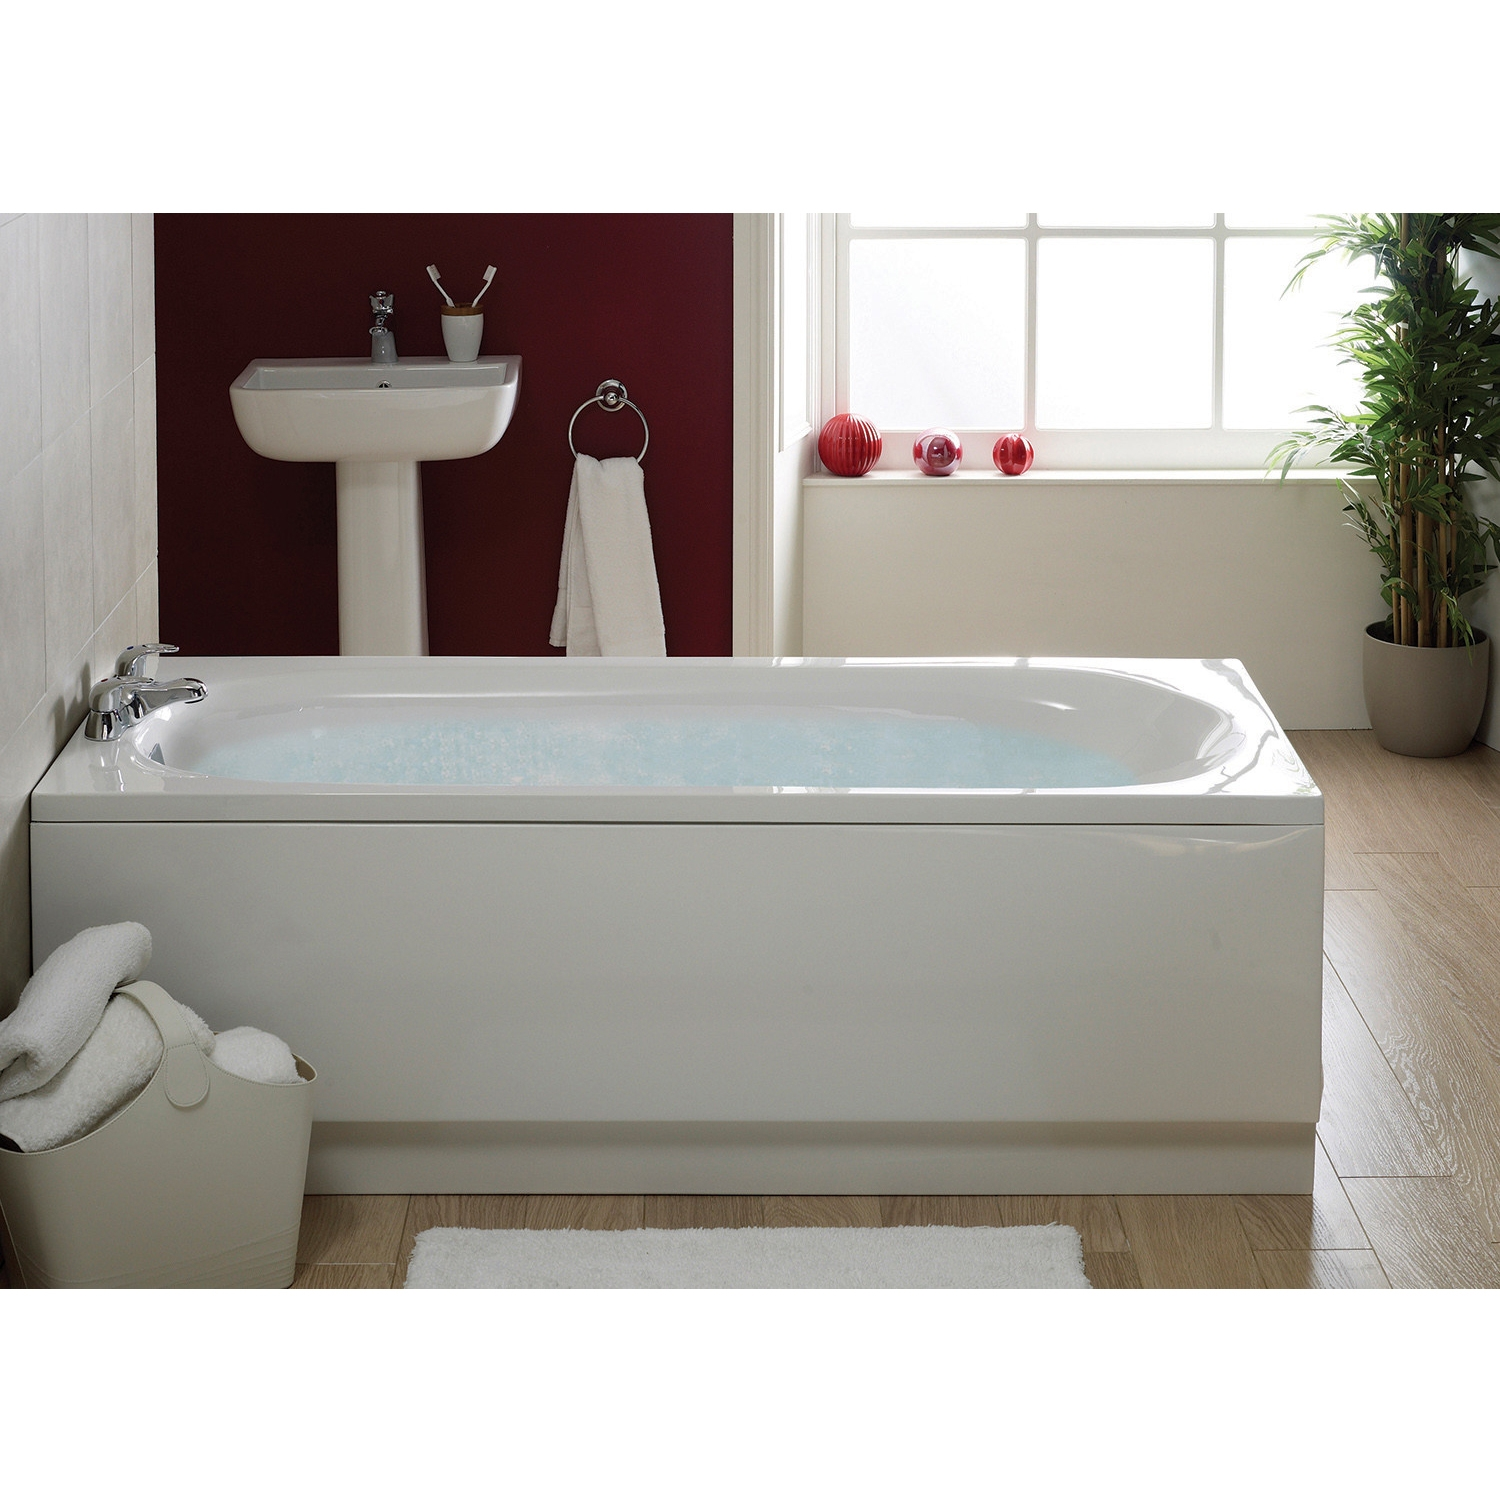 Verona Caymen Single Ended Rectangular Bath 1700mm x 700mm - 0 Tap Hole